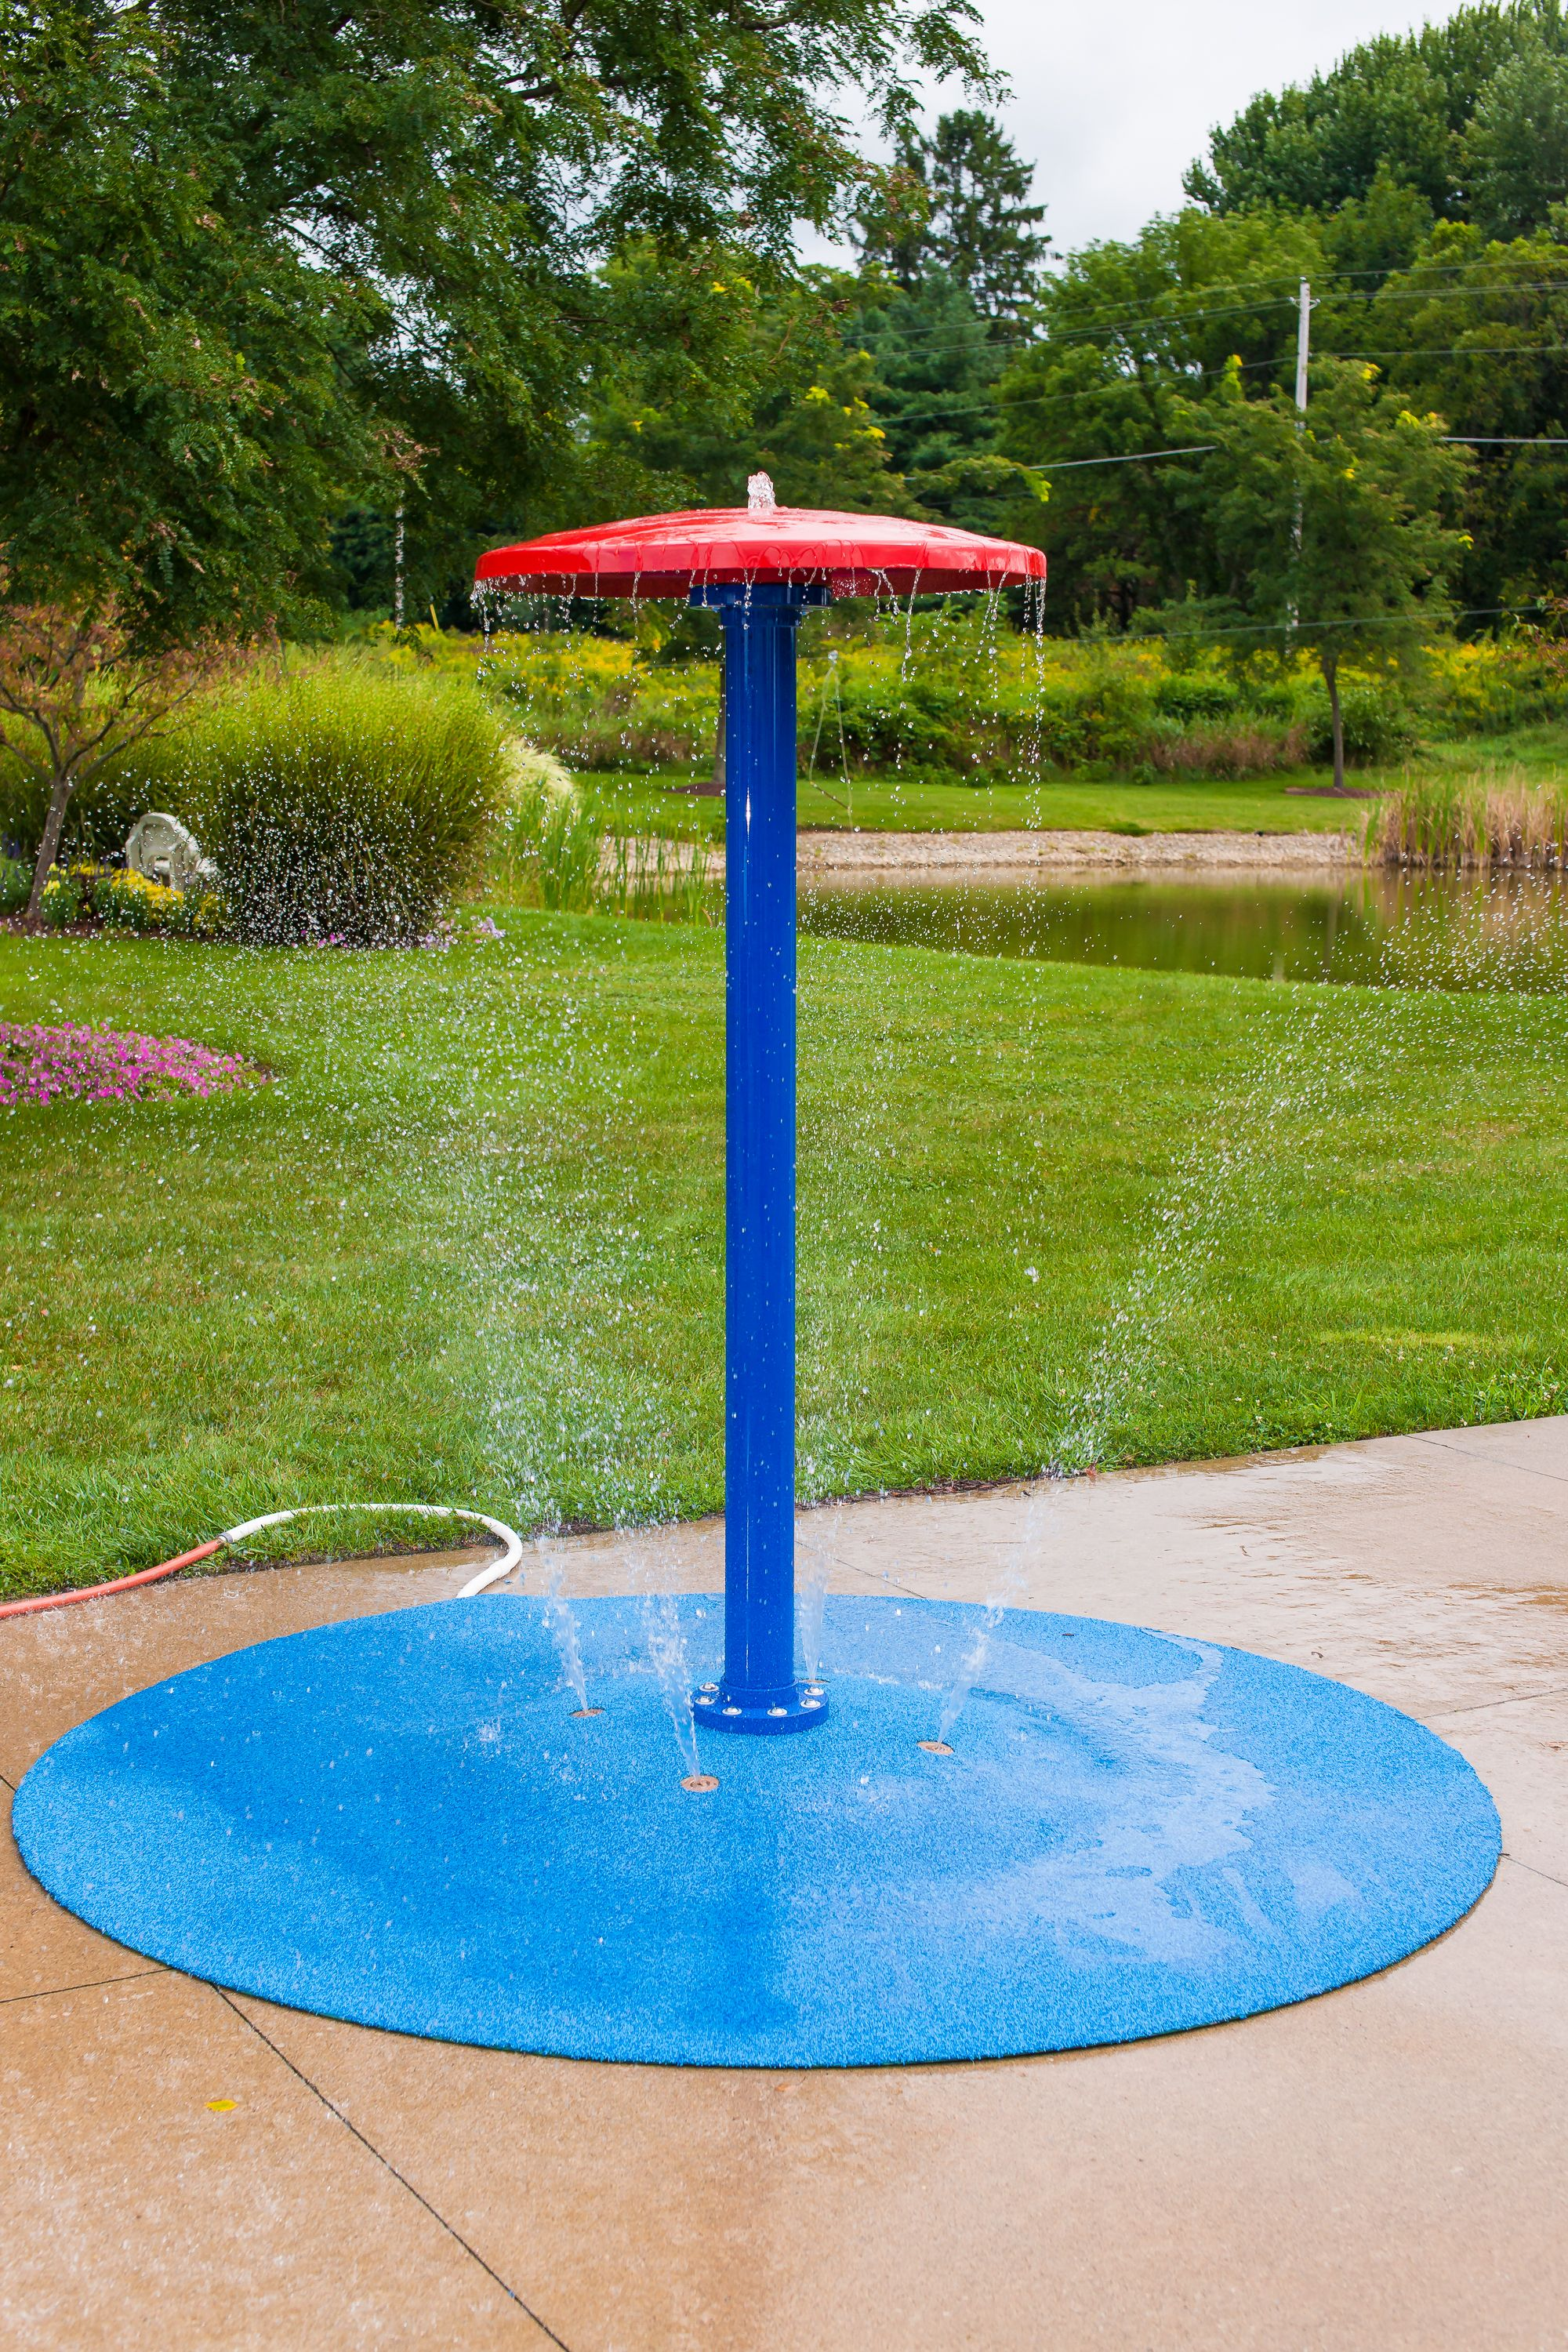 8 Portable Splash Pad Platform With The Umbrella Feature Hot Summer Days Are No Match For This Cool And Refres Backyard Splash Pad Diy Splash Pad Splash Pad Backyard diy splash pad